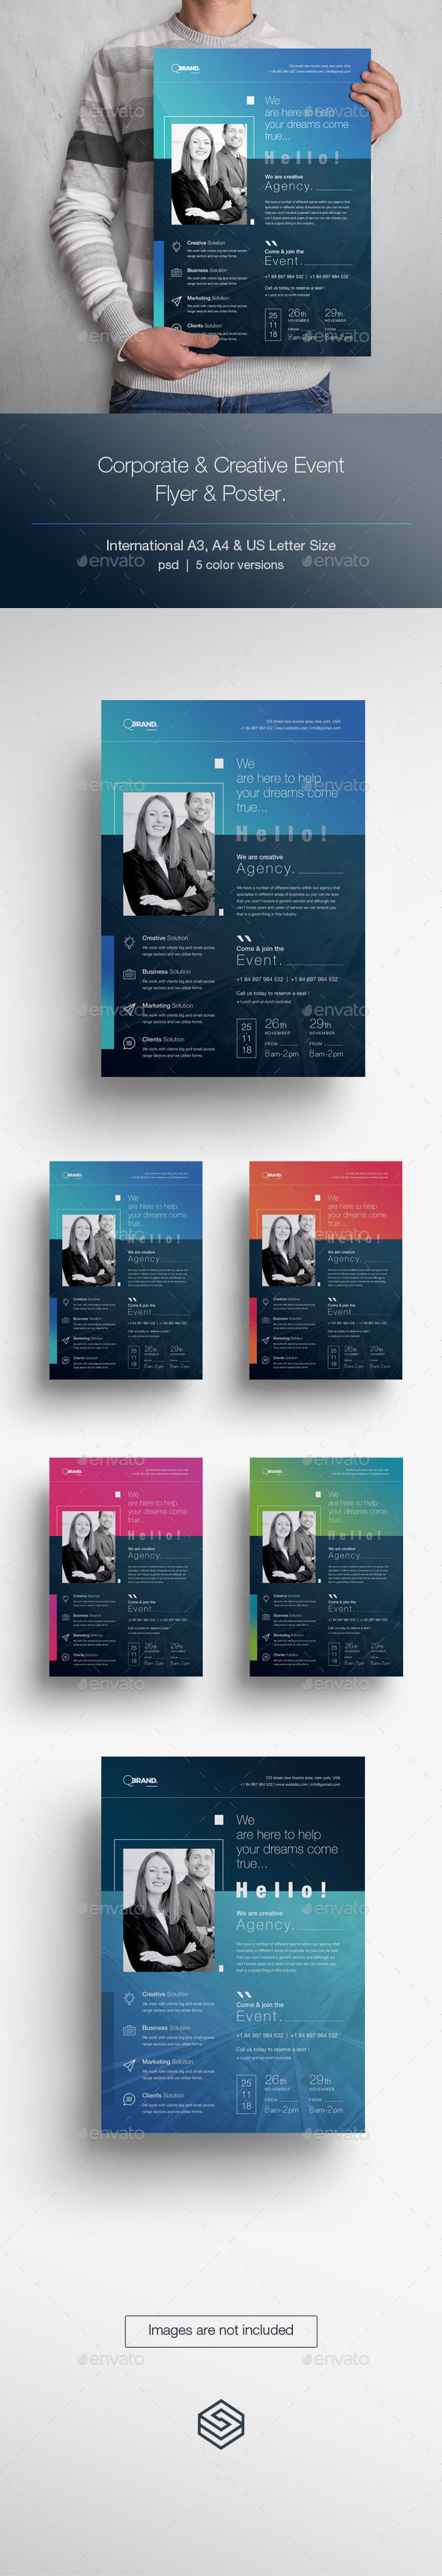 GraphicRiver Conference Event Flyer & Poster 20712803